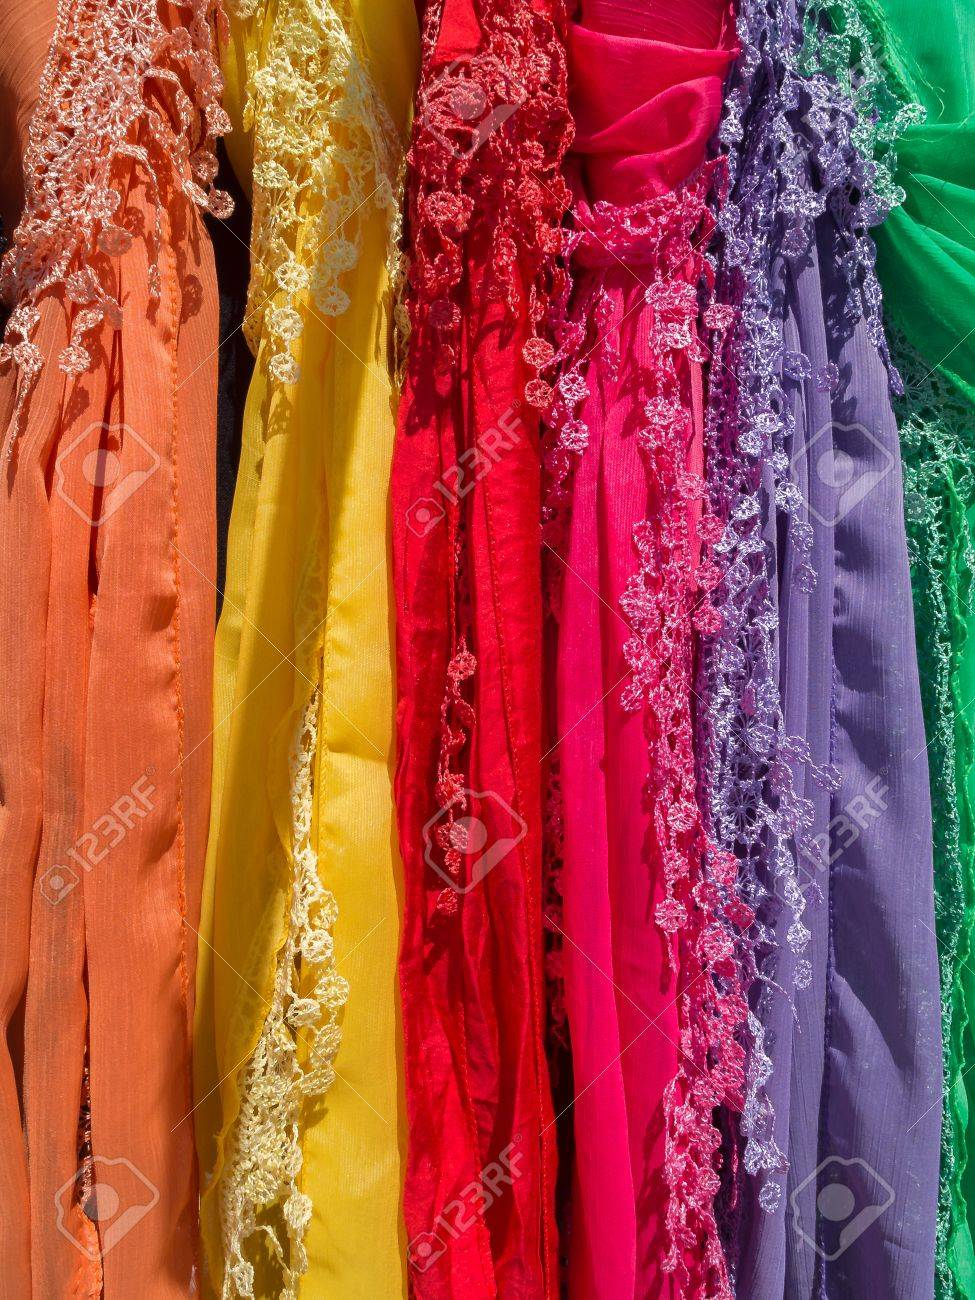 Silk scarves on display at a market stall in Fuengirola Stock Photo - 13858175